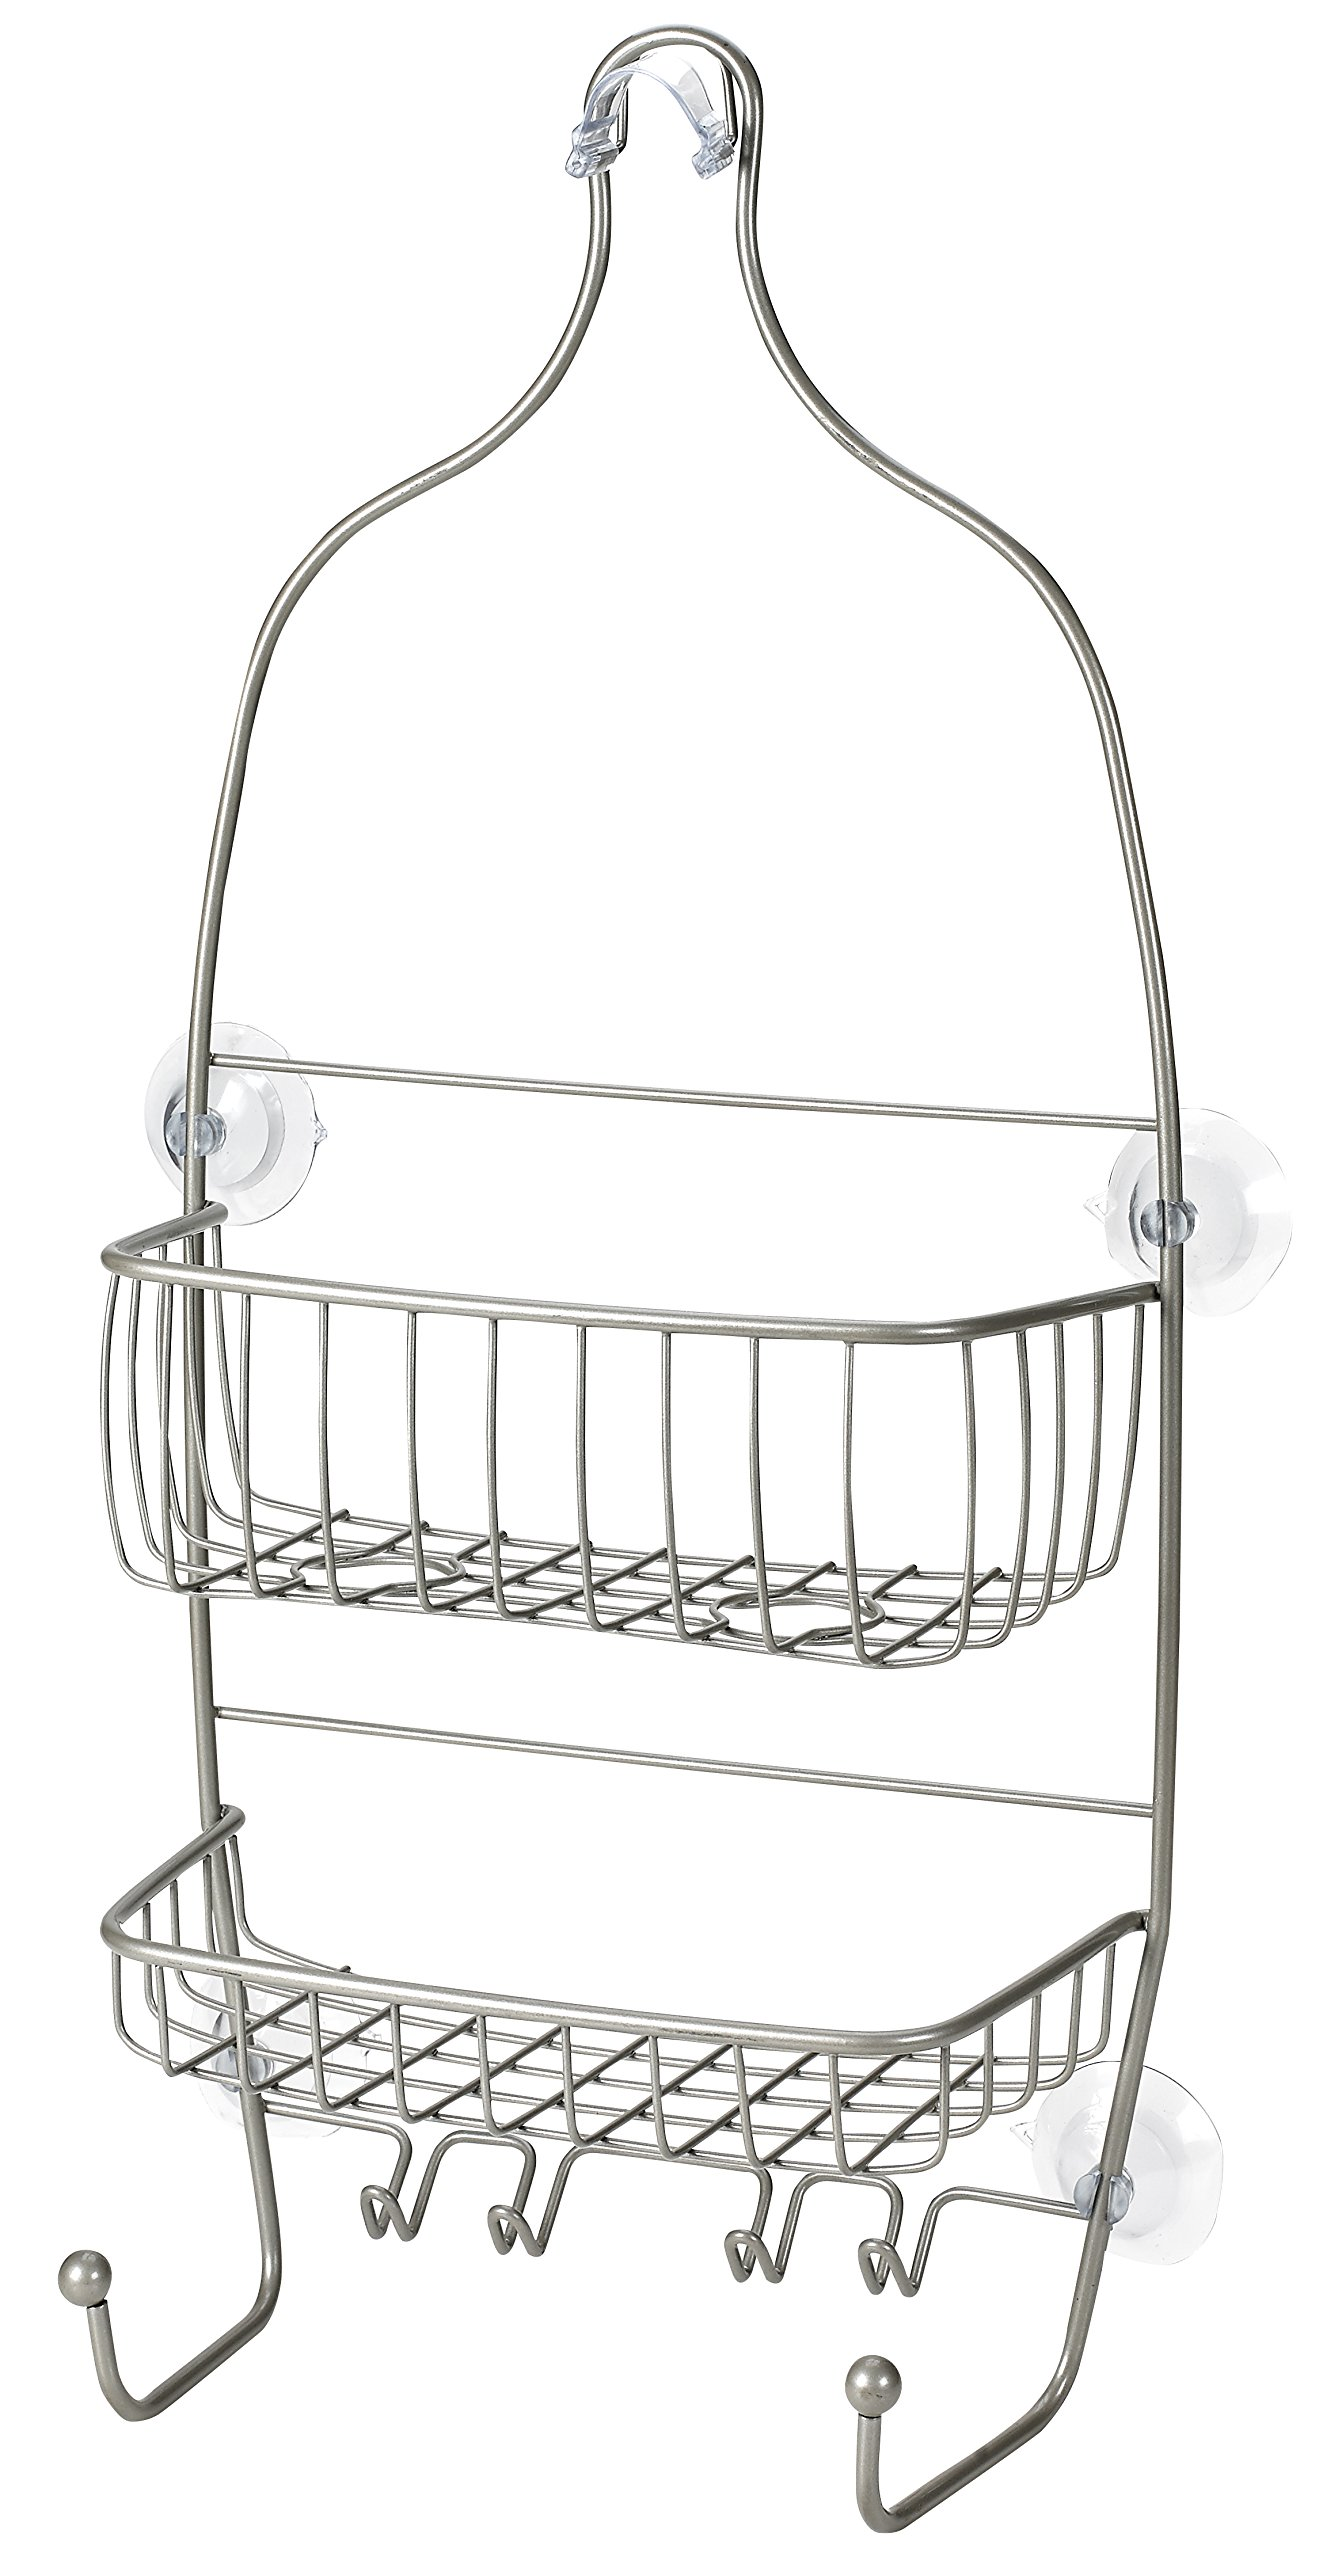 Hanging Shower Caddy - Stainless Steel and Rust Free Ensuring a Great Appearance. Large Shelves and Hooks Make it an Efficient Bathroom Shower Storage Organizer. Easily Hang with Suction Cups.